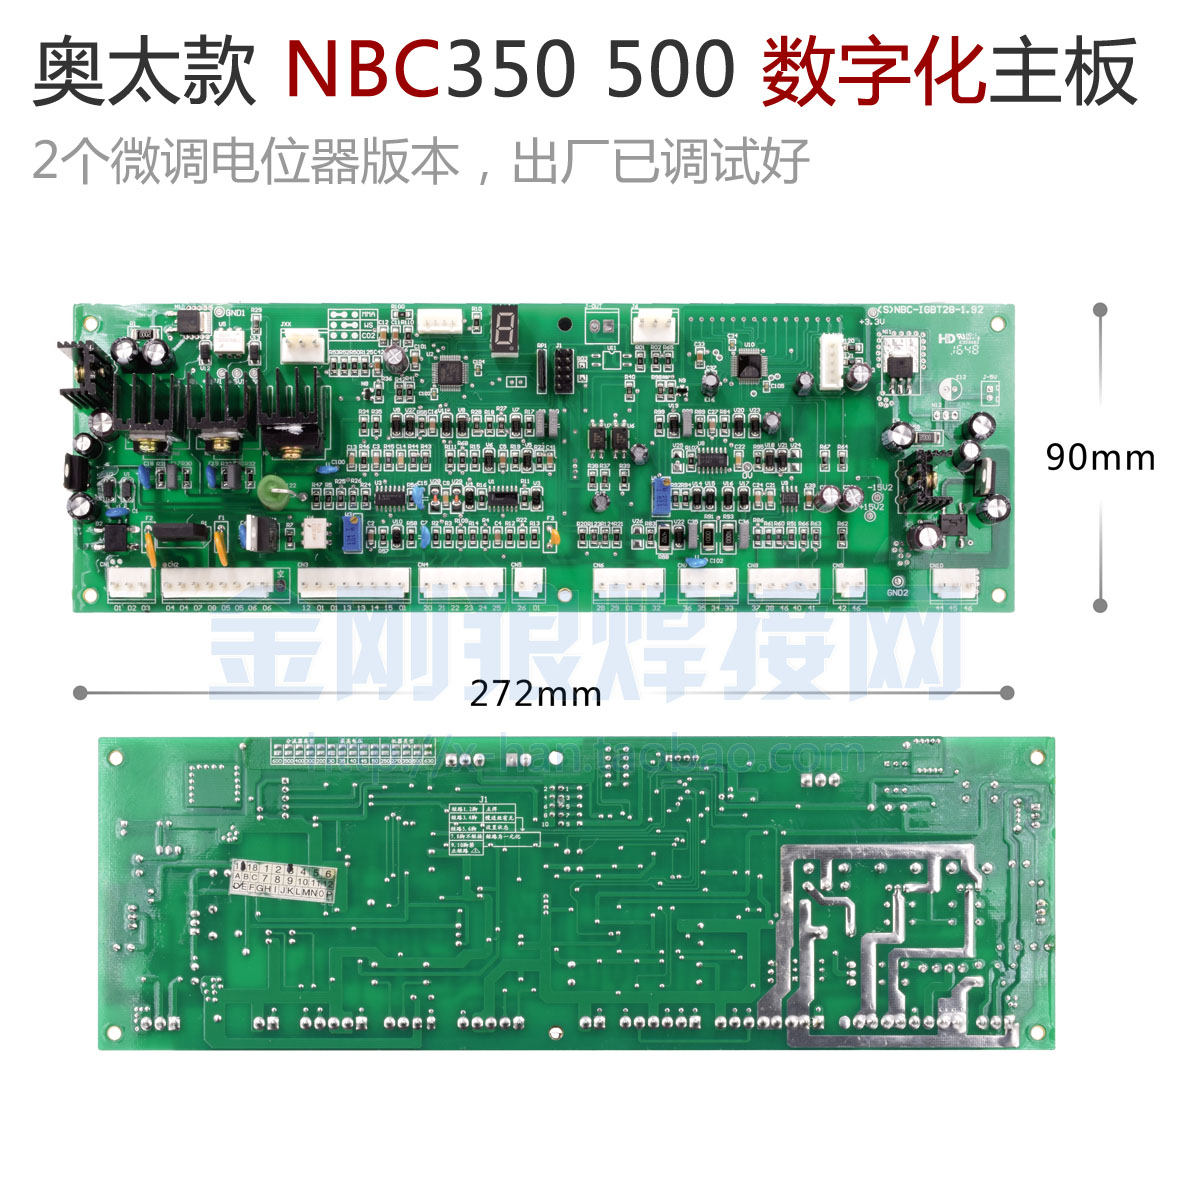 лучшая цена YDT Aotai NBC 350500 inverter IGBT gas shielded welding machine main board welding control board circuit board